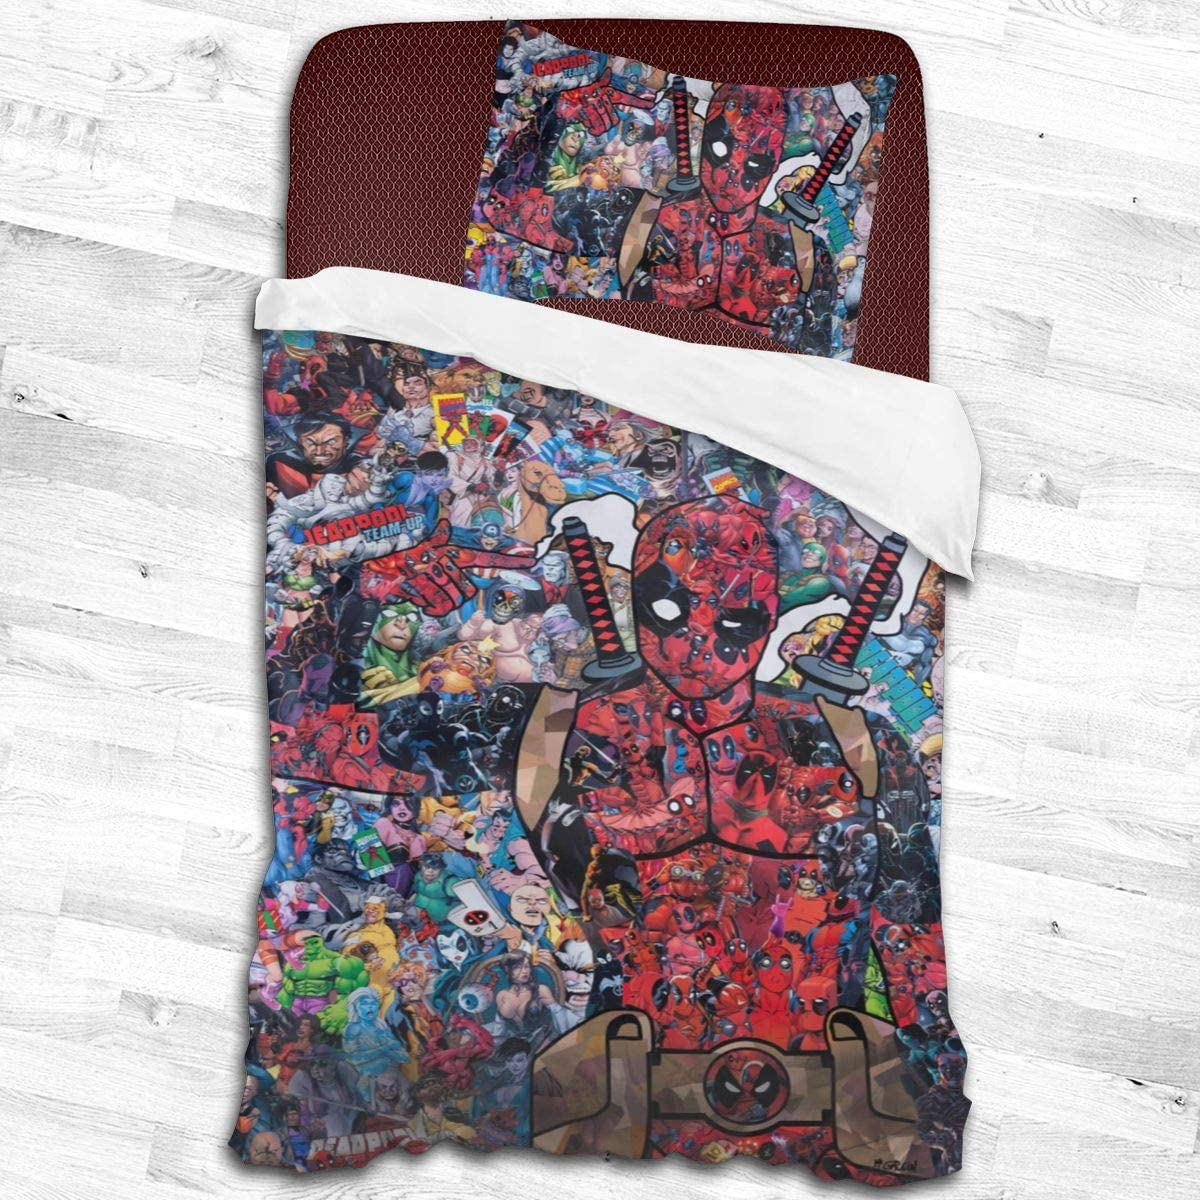 """GaoBaiProduct Deadpool Collage 2-Piece Bedding Set with Pillow Case,Twin Size (55""""x83"""",53""""x79"""") Bed Comforter Set"""